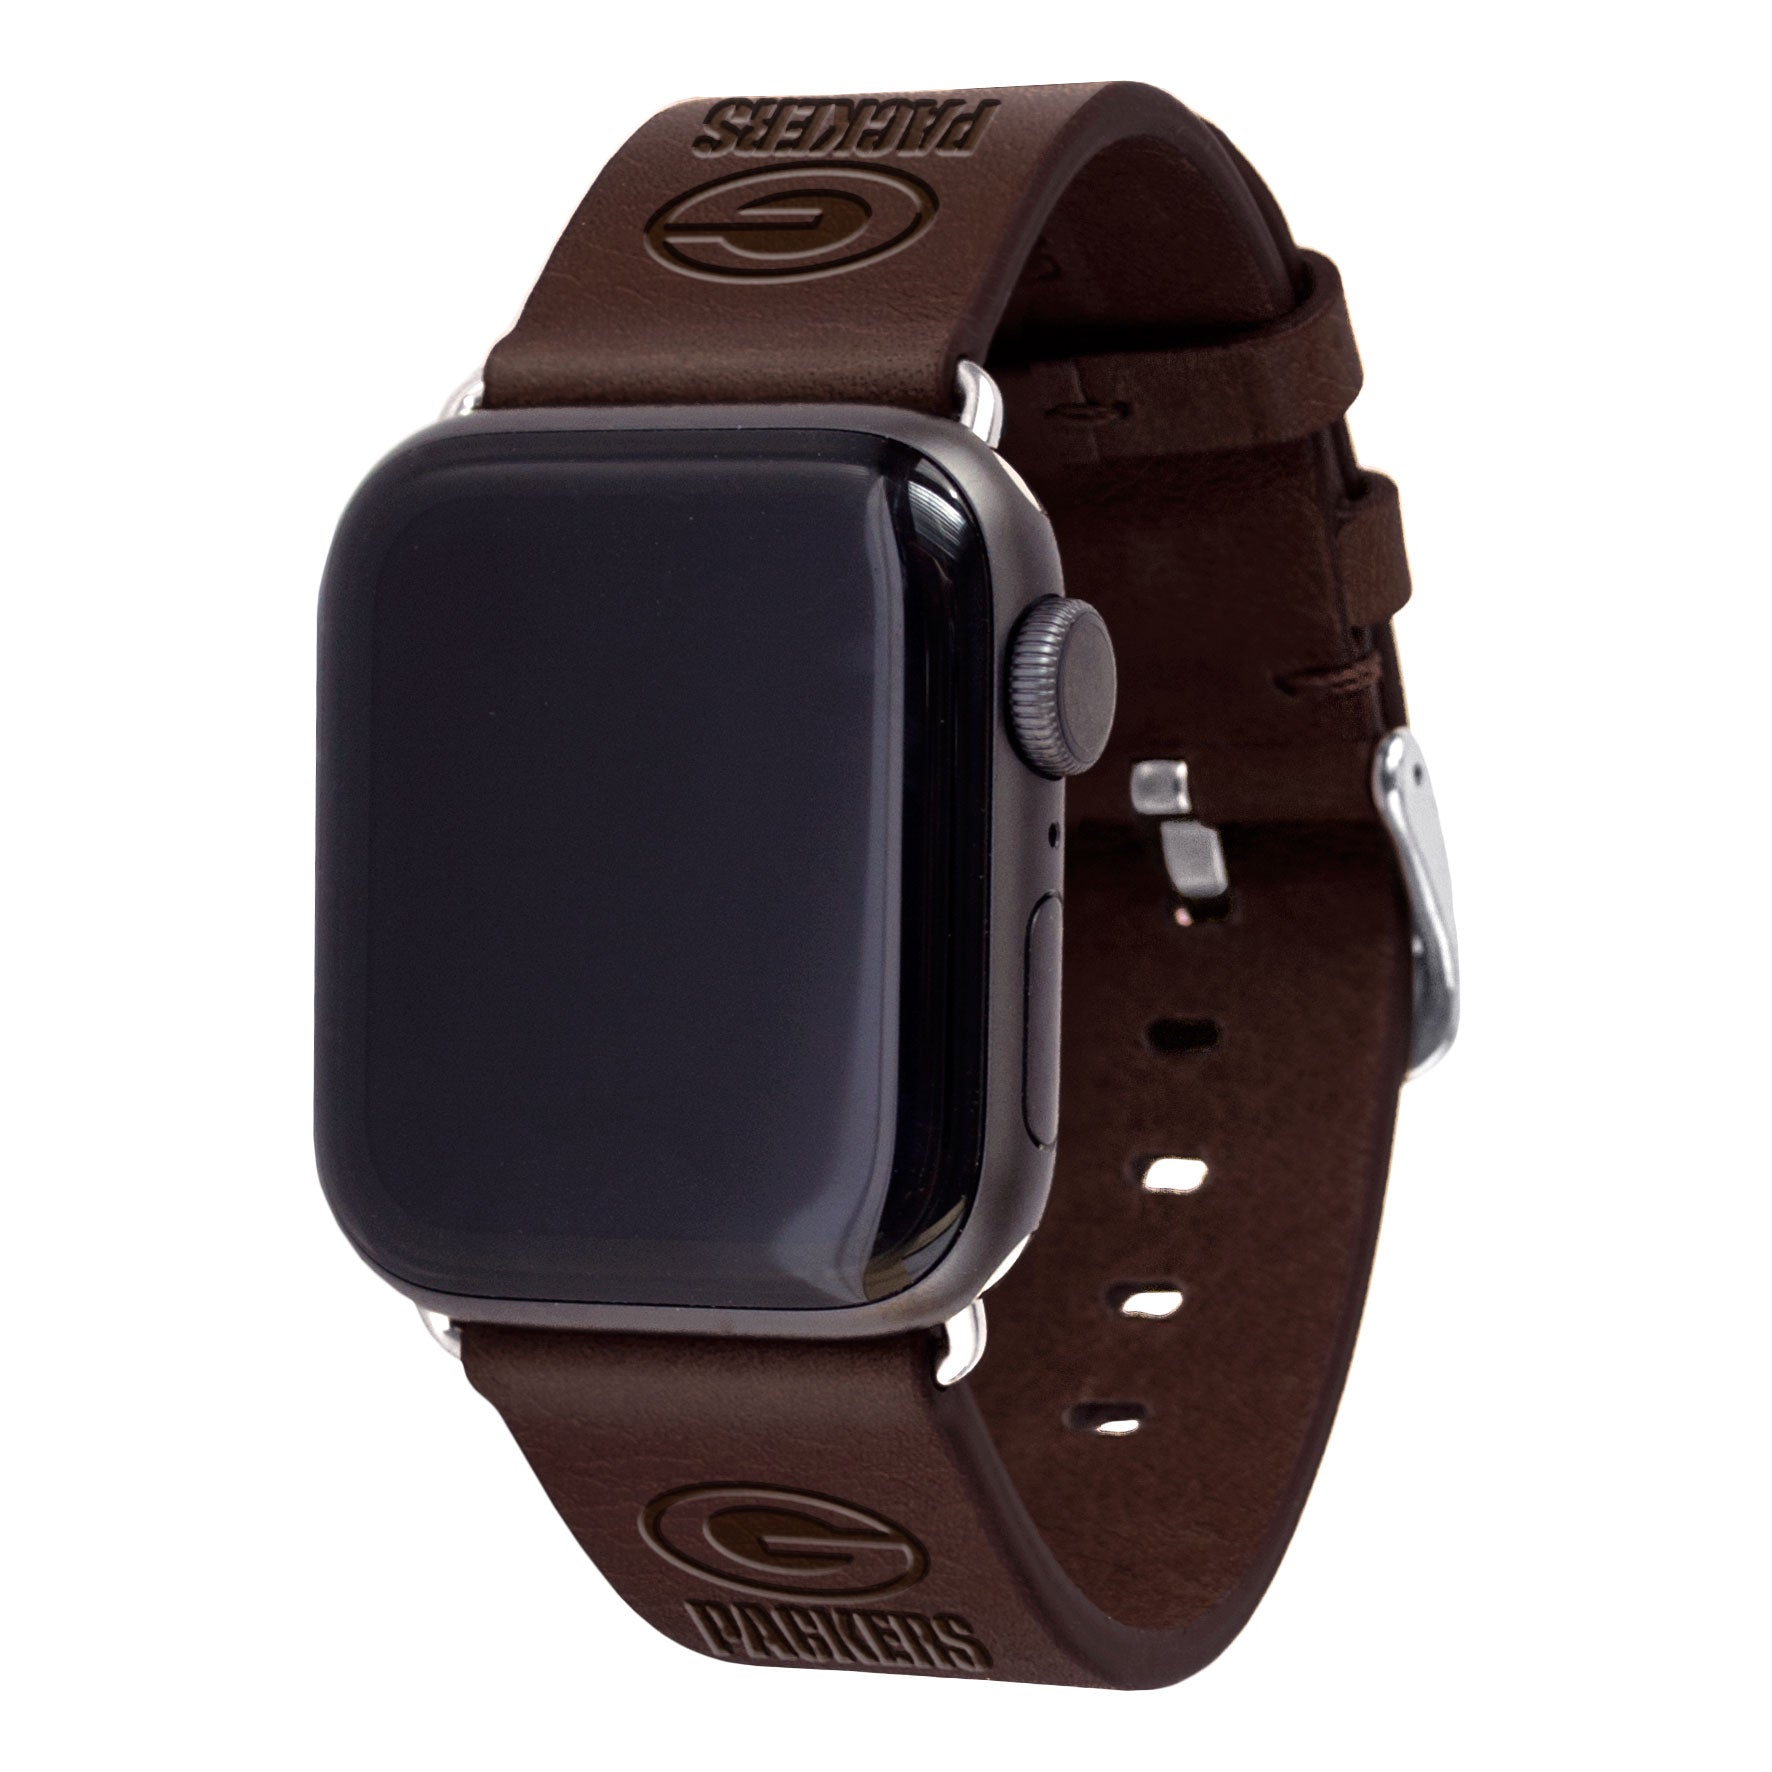 Green Bay Packers Leather Apple Watch Band-AffinityBands